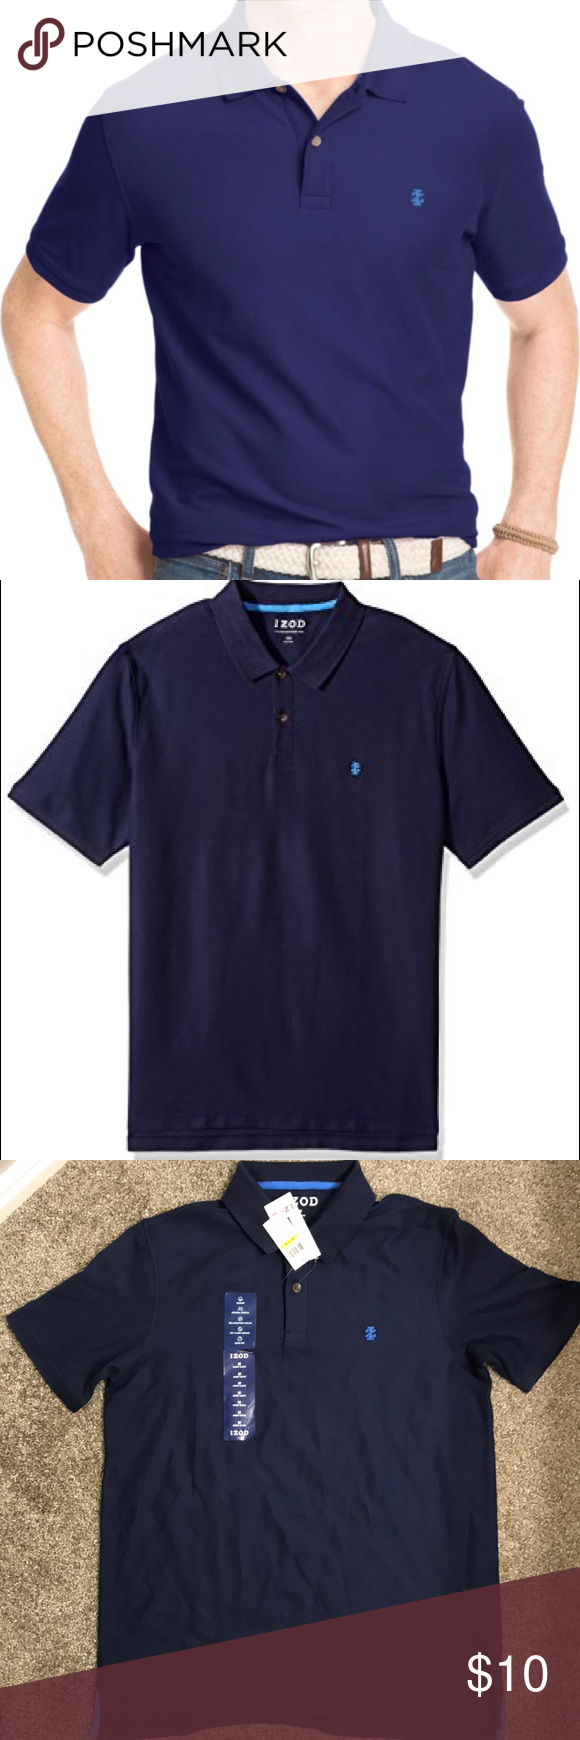 1a5d8b2c Next Mens Short Sleeve Polo Shirts | Toffee Art